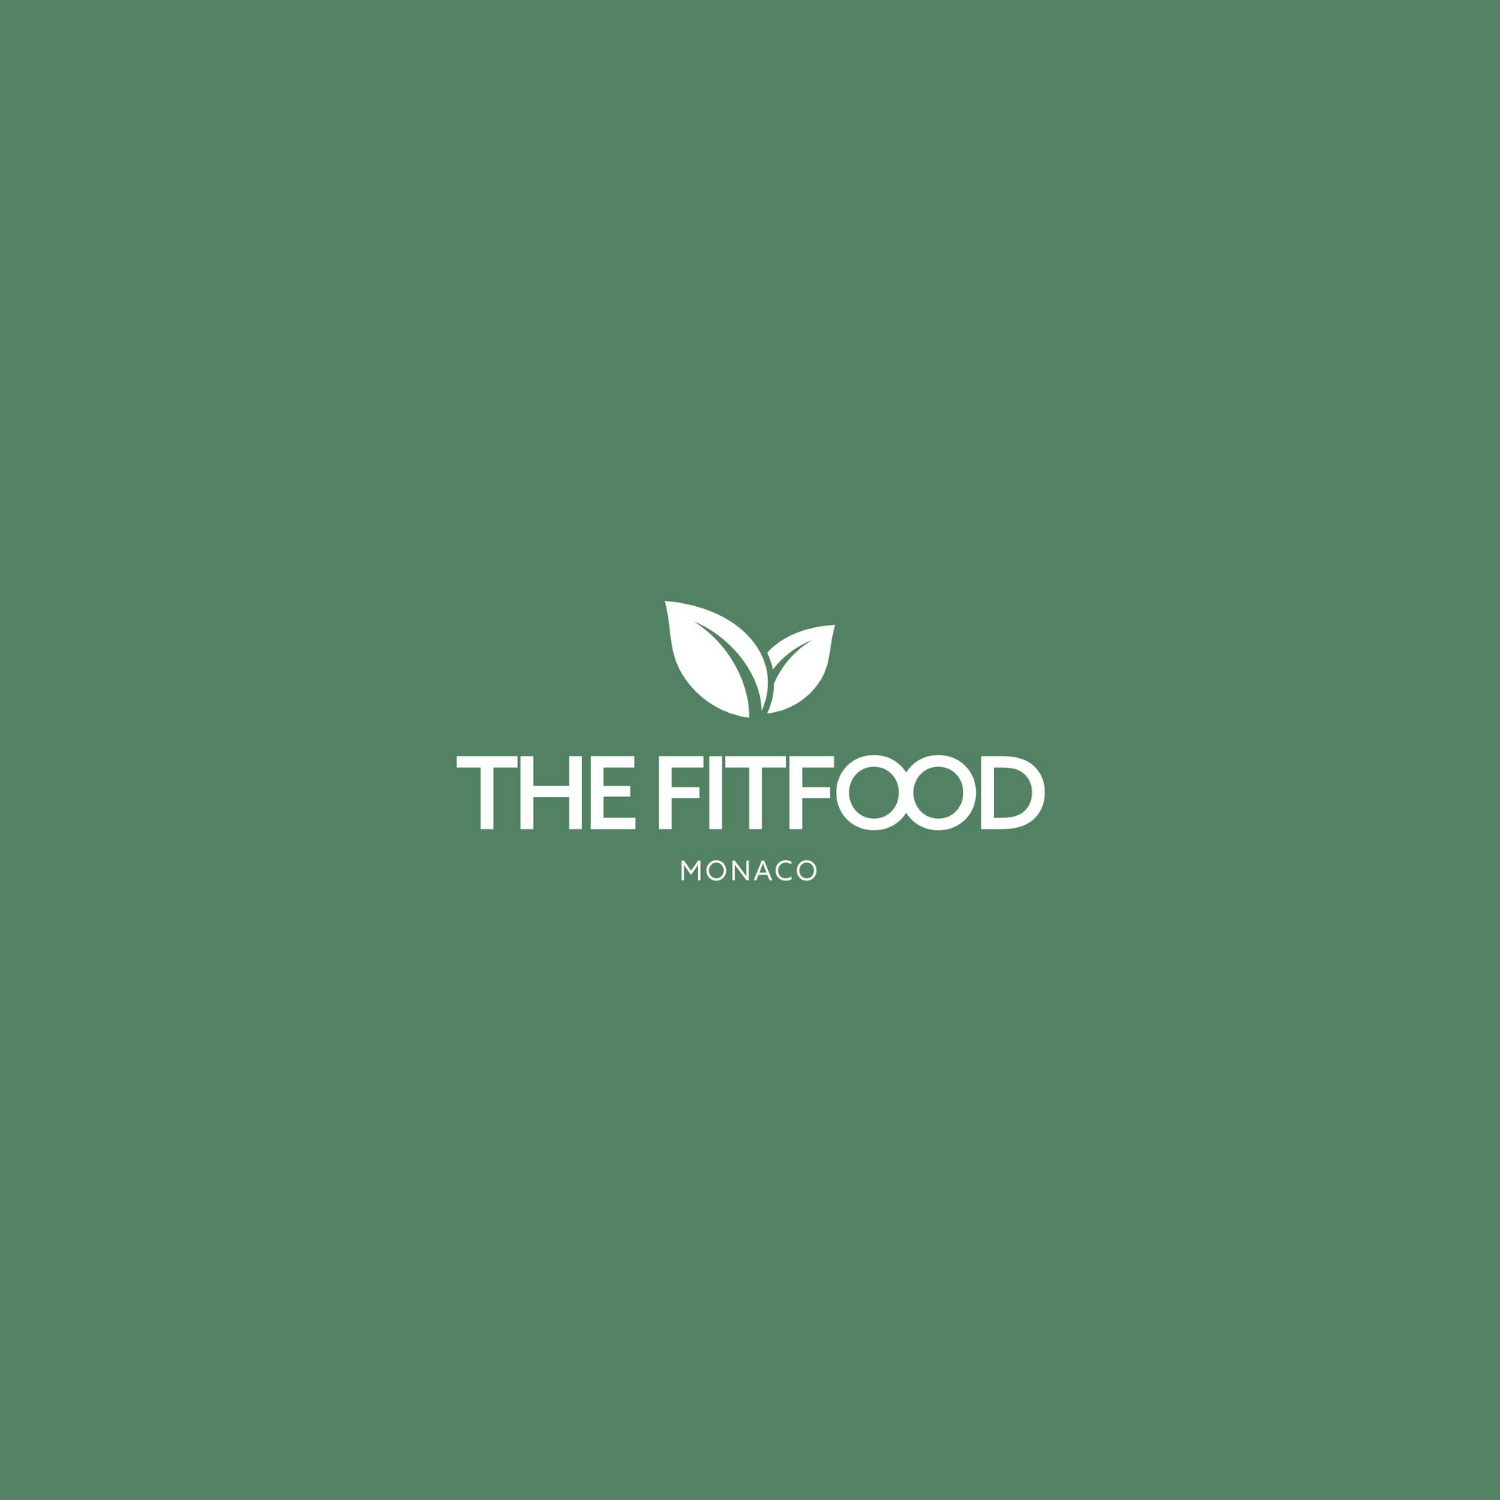 monaco-carlo-commercant-the-fitfood-restaurant-healthy